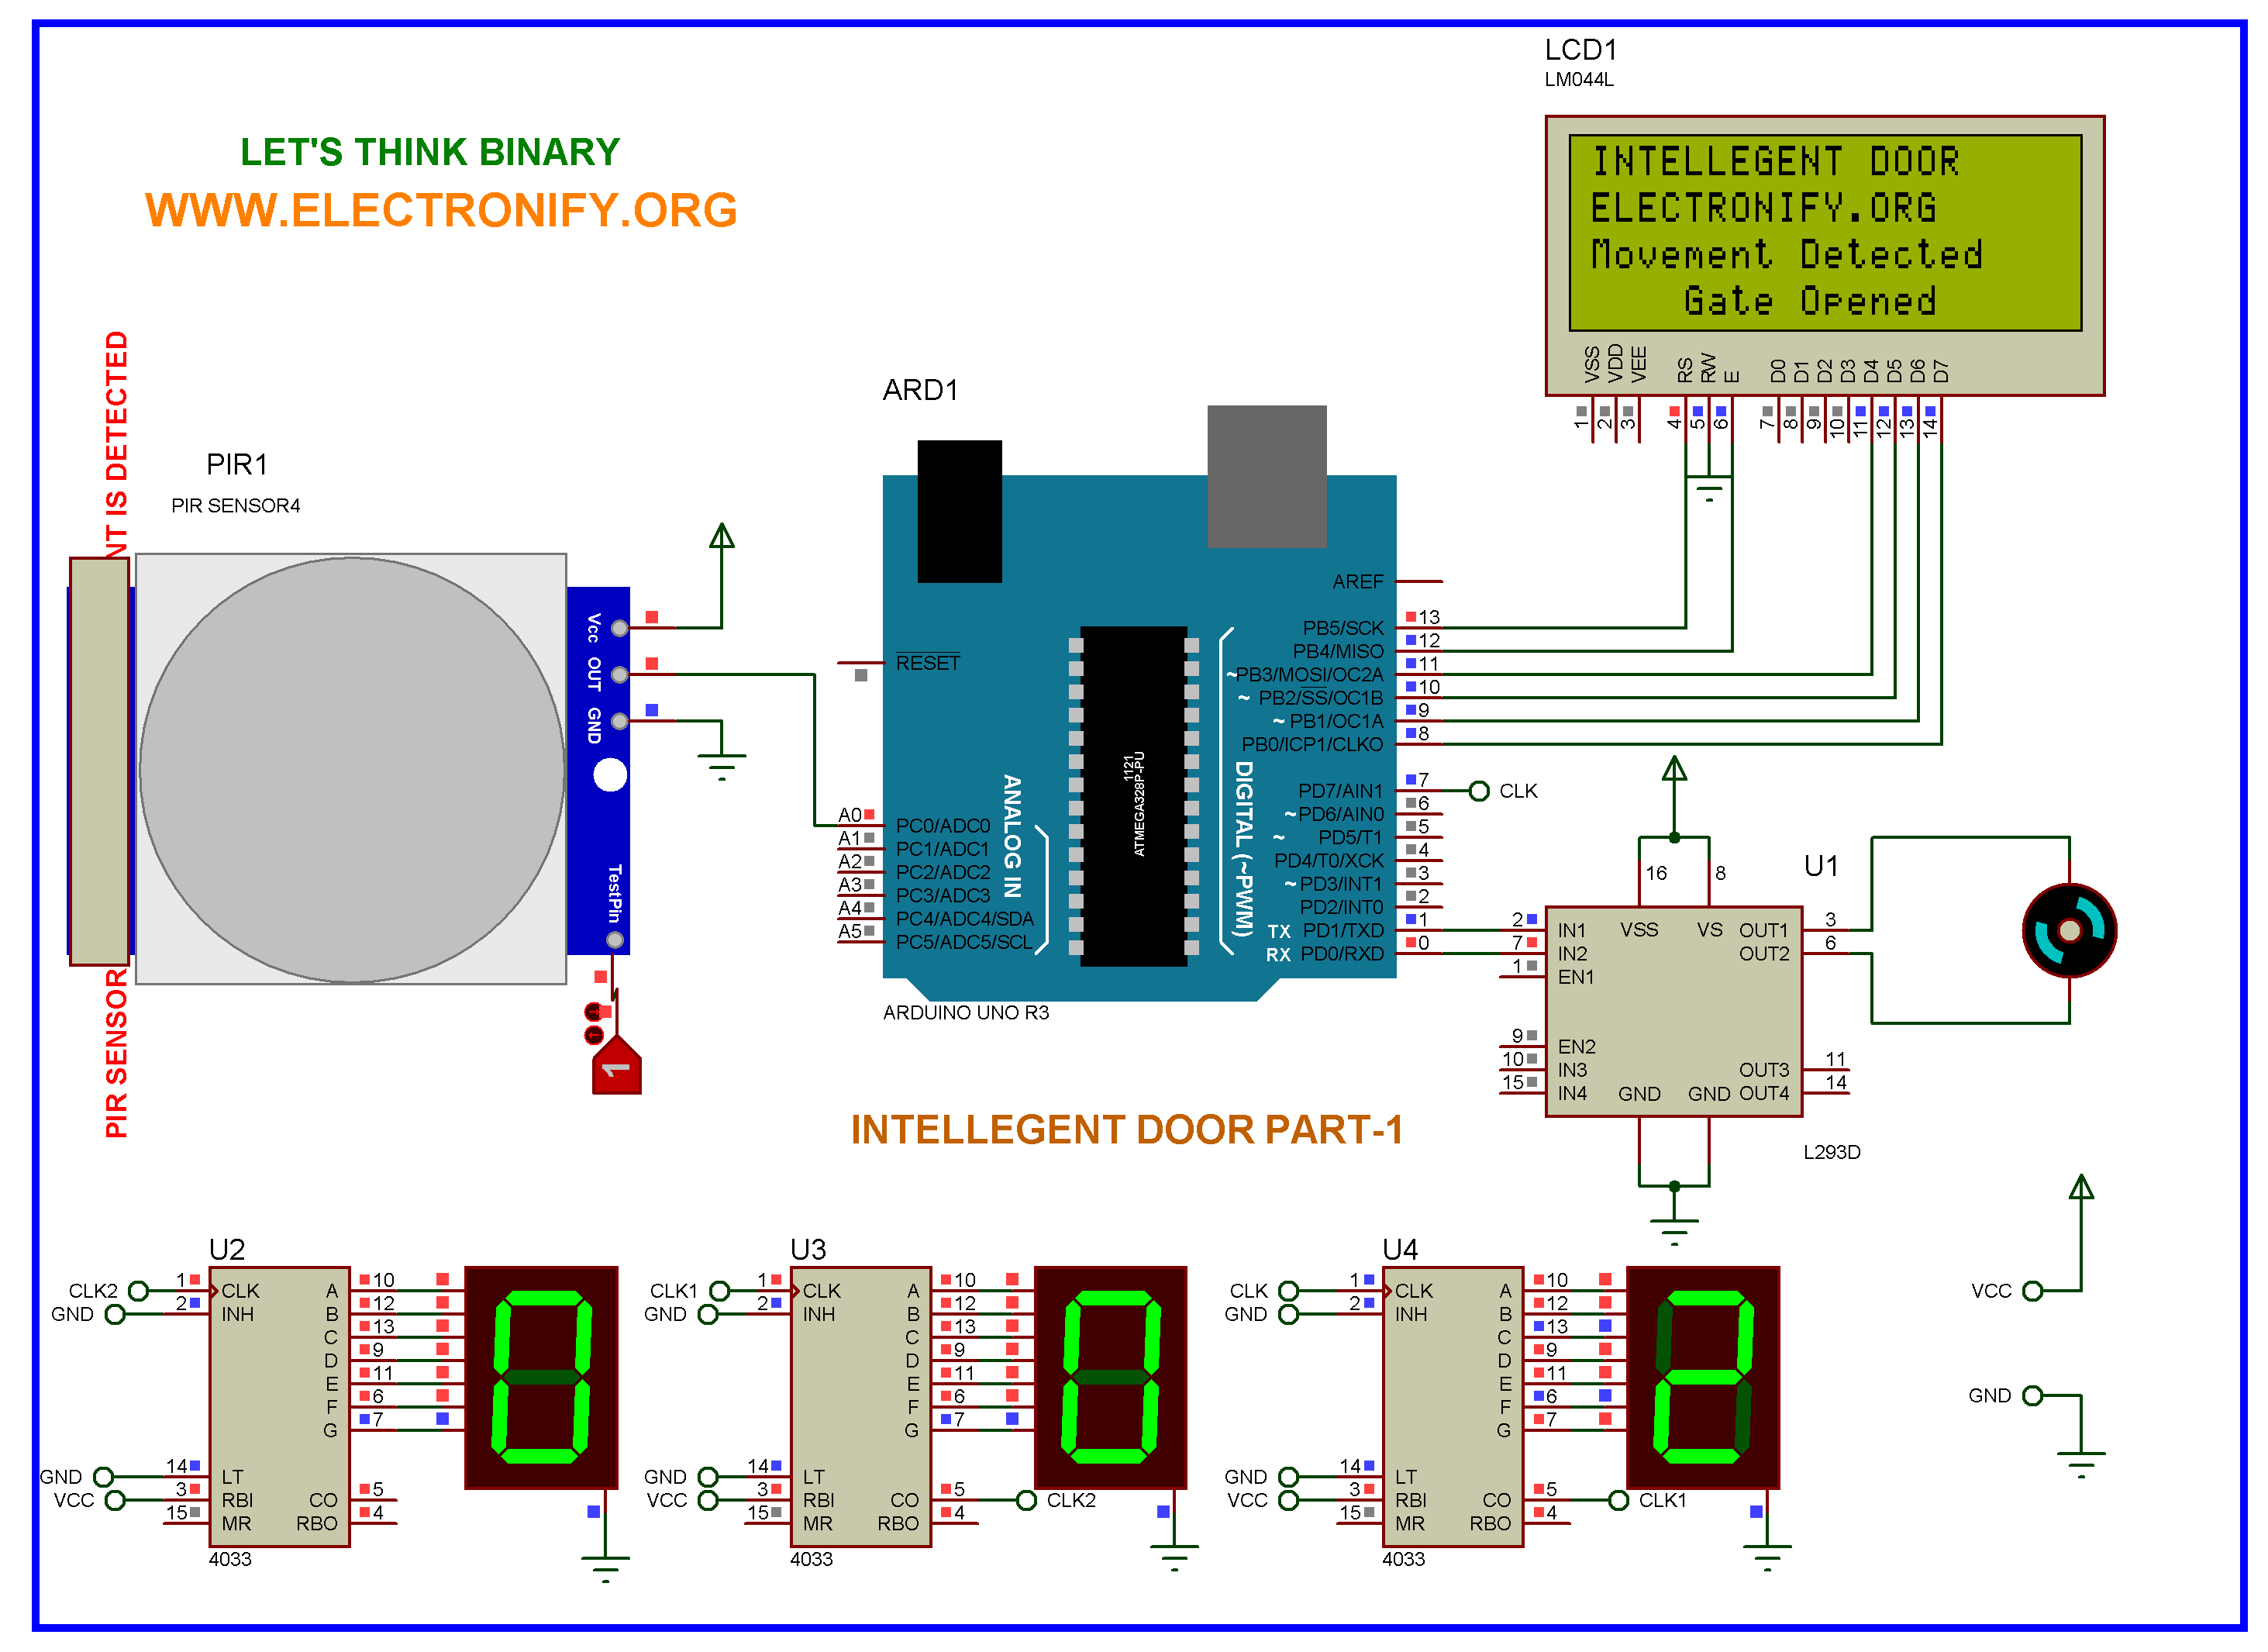 AUTOMATIC DOOR OPEN SYSTEM WITH VISITOR COUNTER PART-2 Using ... on